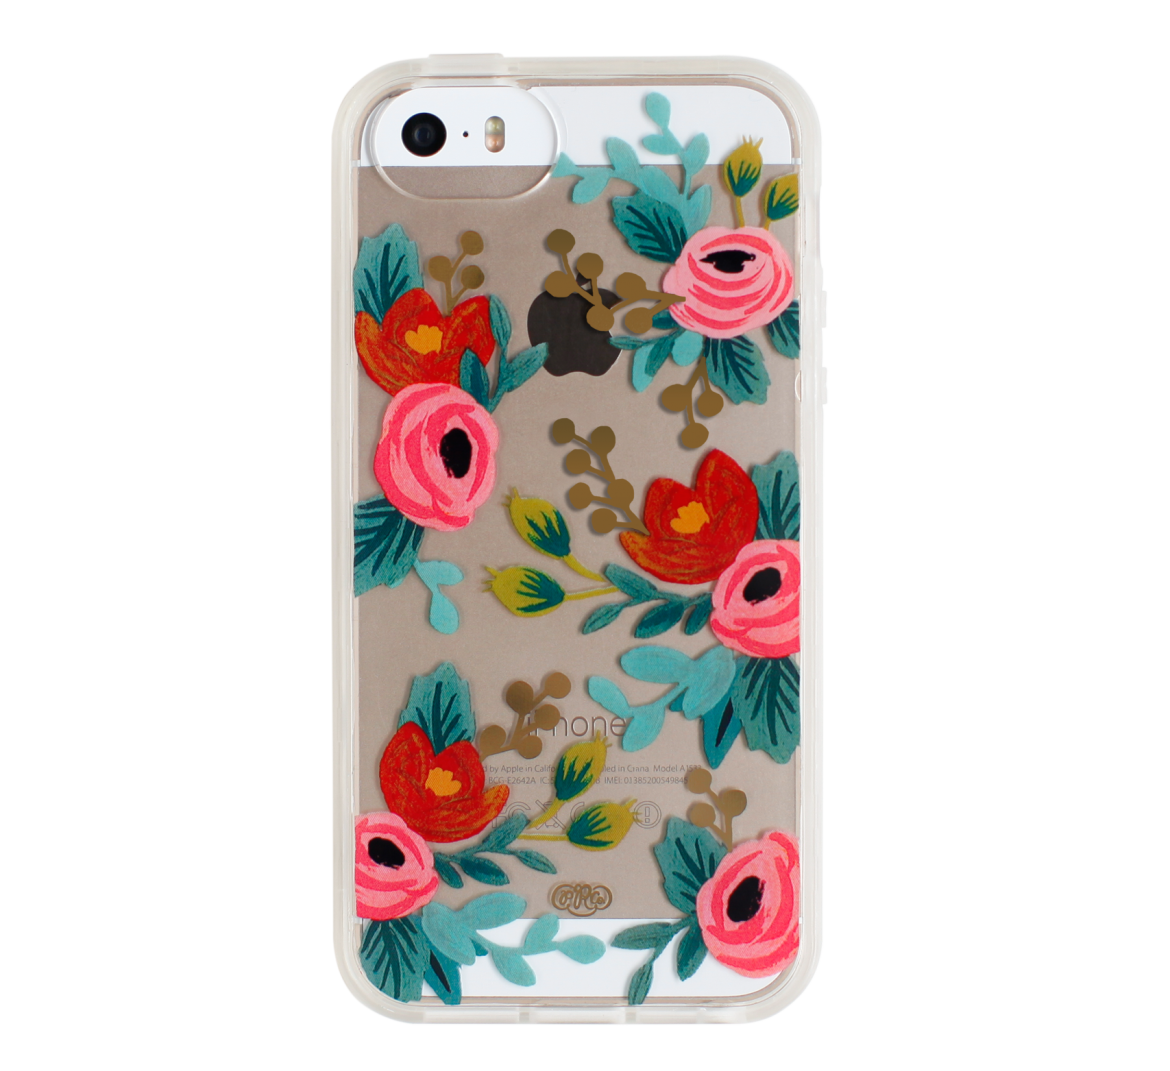 Clear Rosa phone case , $36 (Great stocking stuffer)